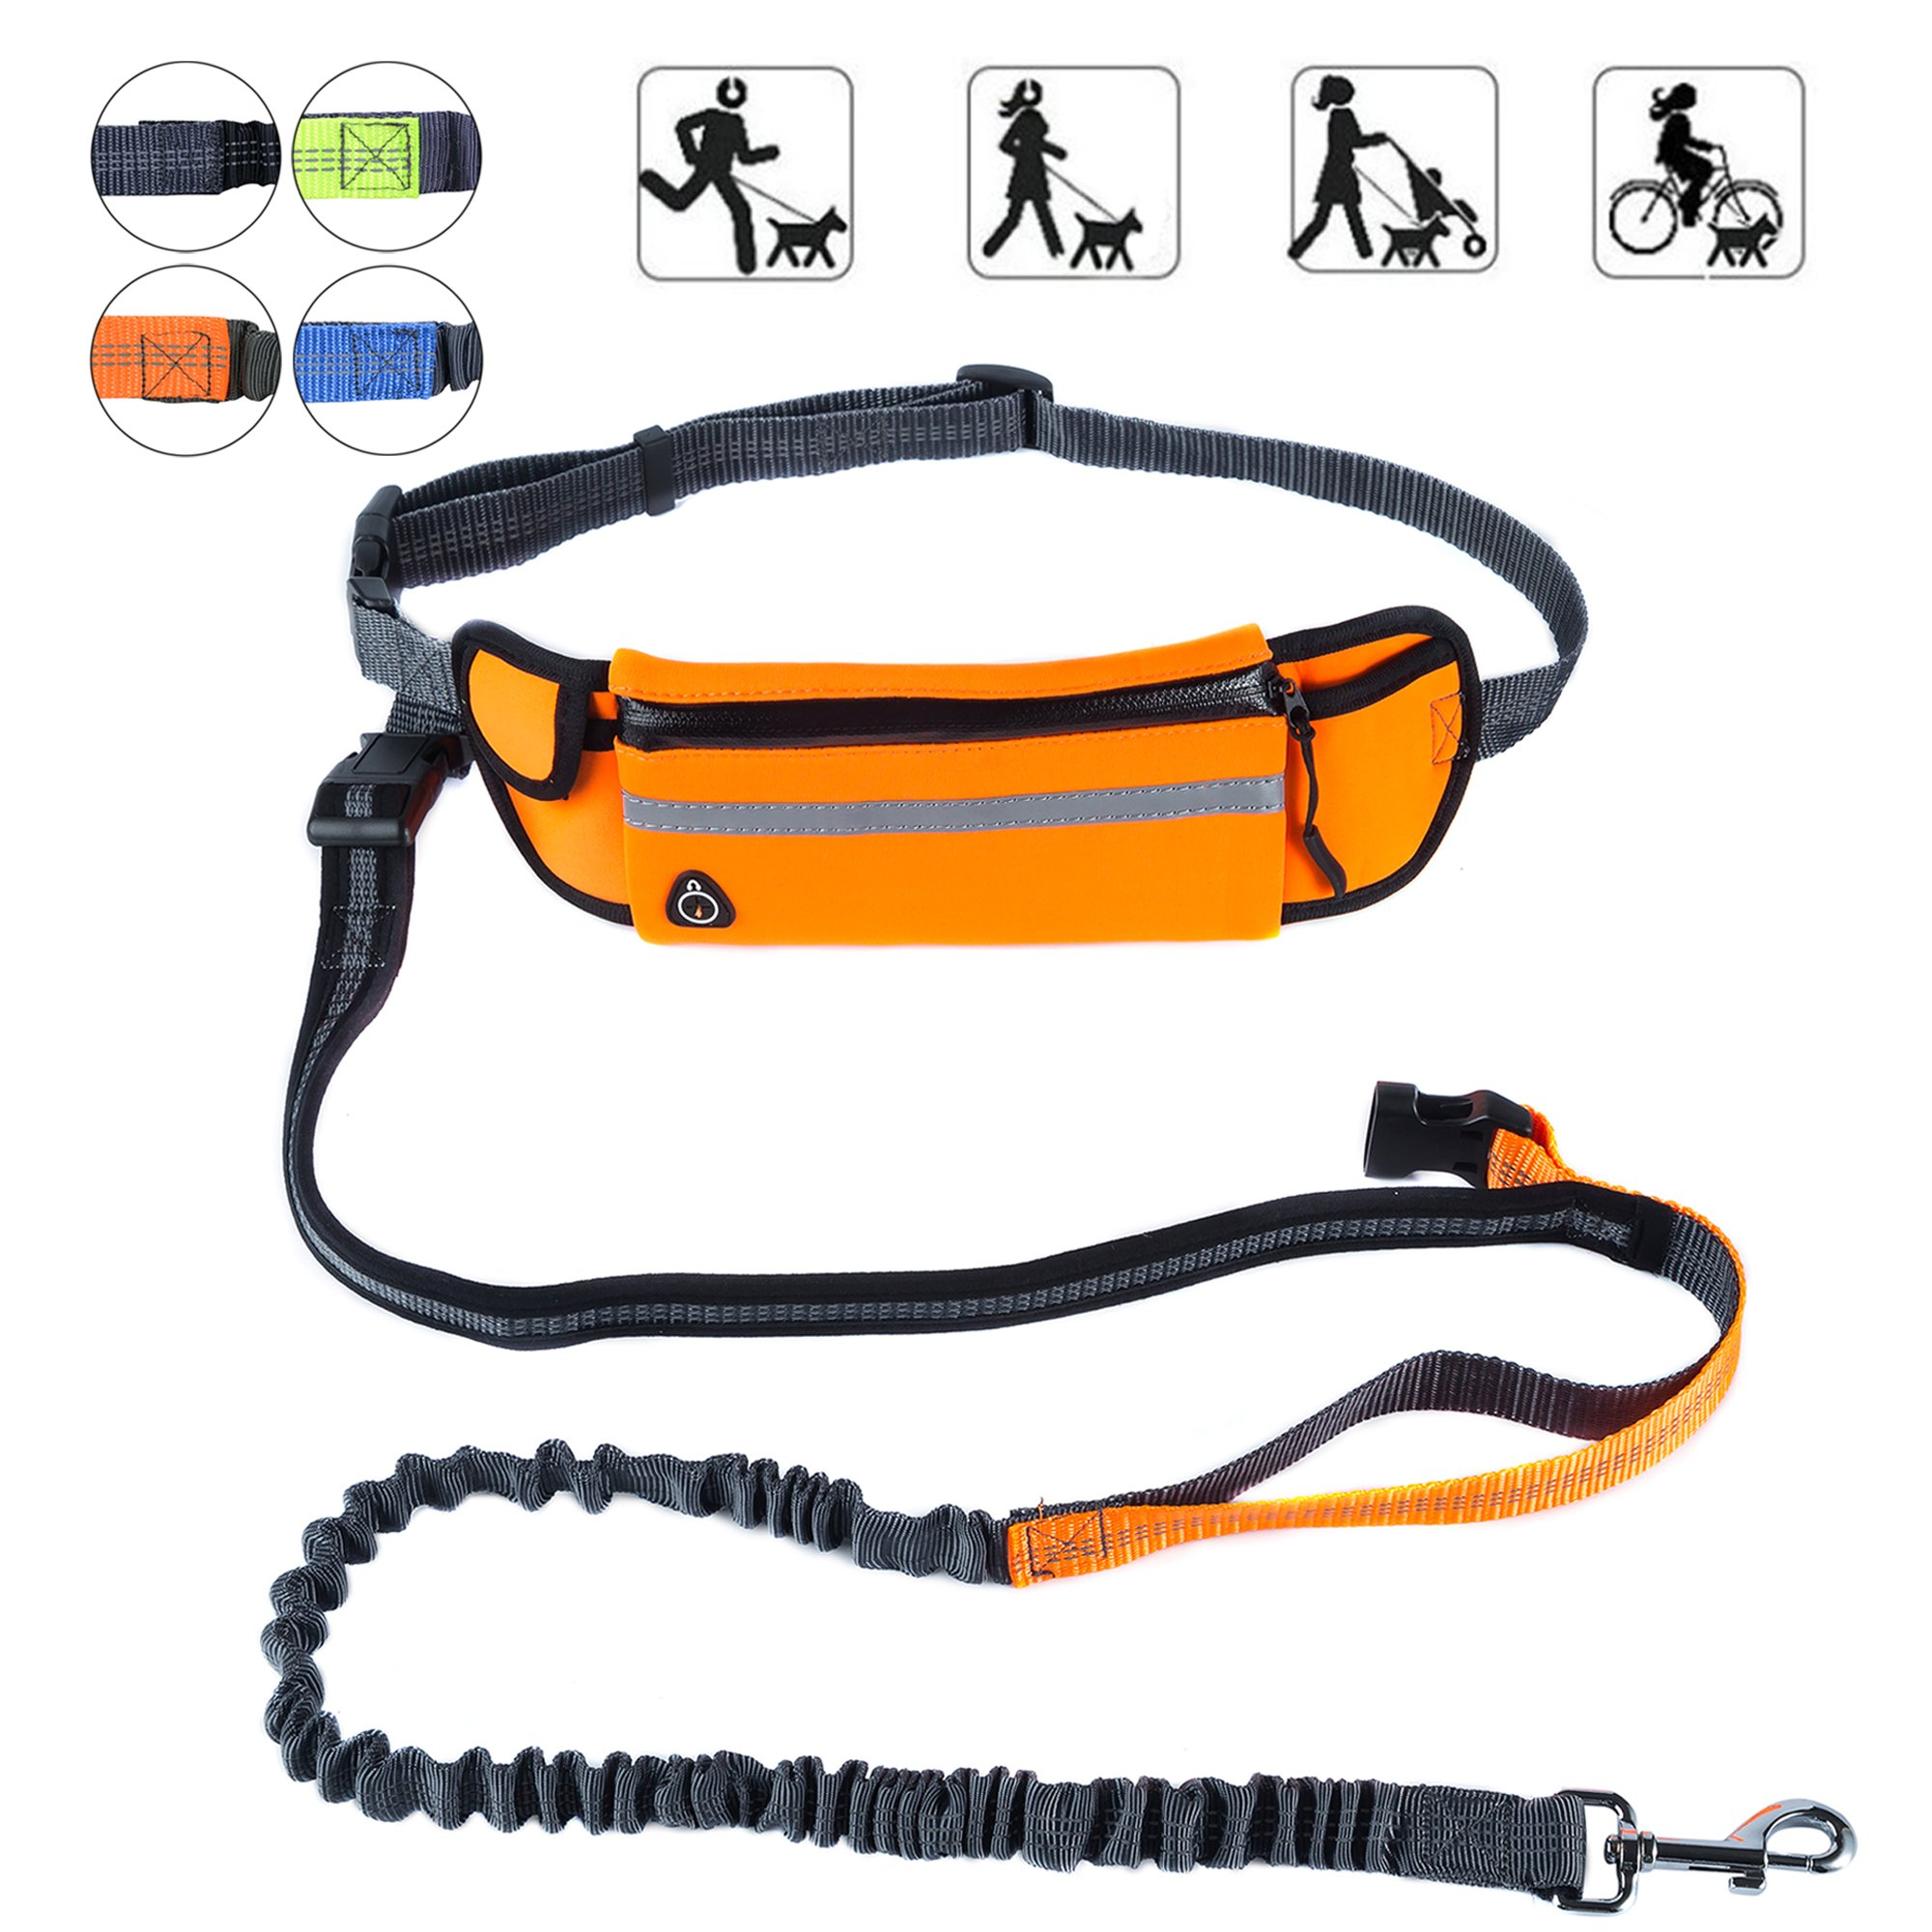 PetforCity Hands Free Dog Running Leash with Waist Pocket Adjustable Belt Shock Absorbing Bungee Fits up to 45''